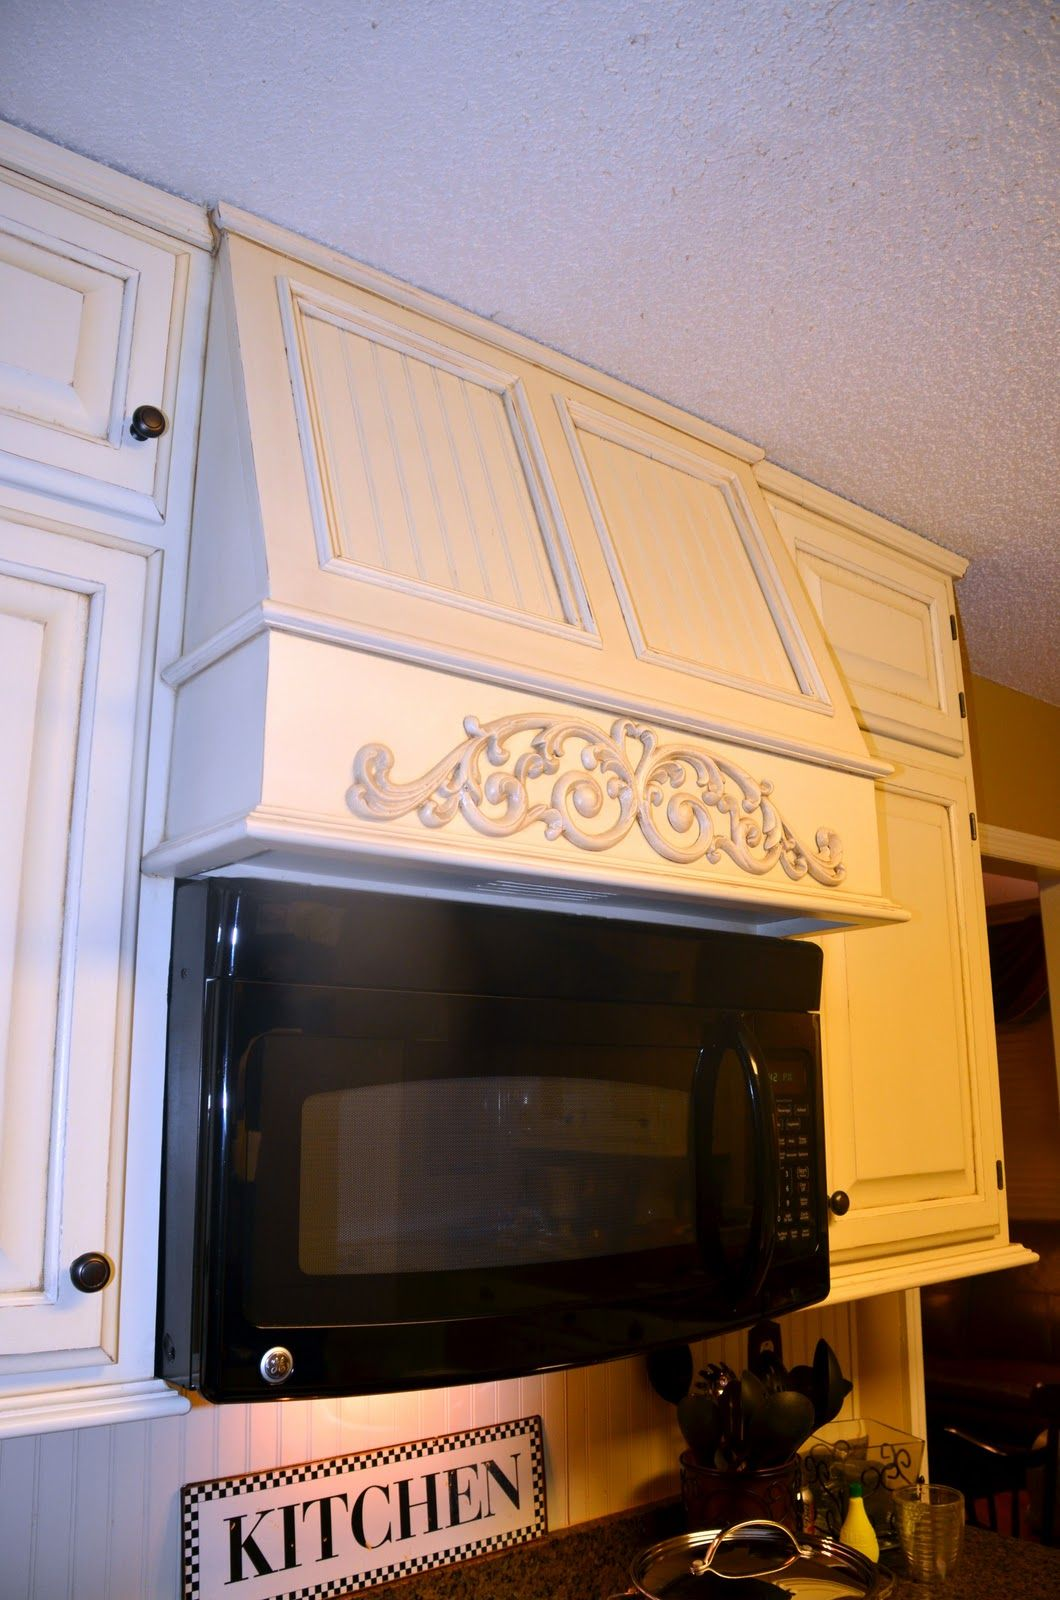 Southern Inspirations My Fake Kitchen Microwave Hood Kitchen Vent Microwave In Kitchen Kitchen Vent Hood